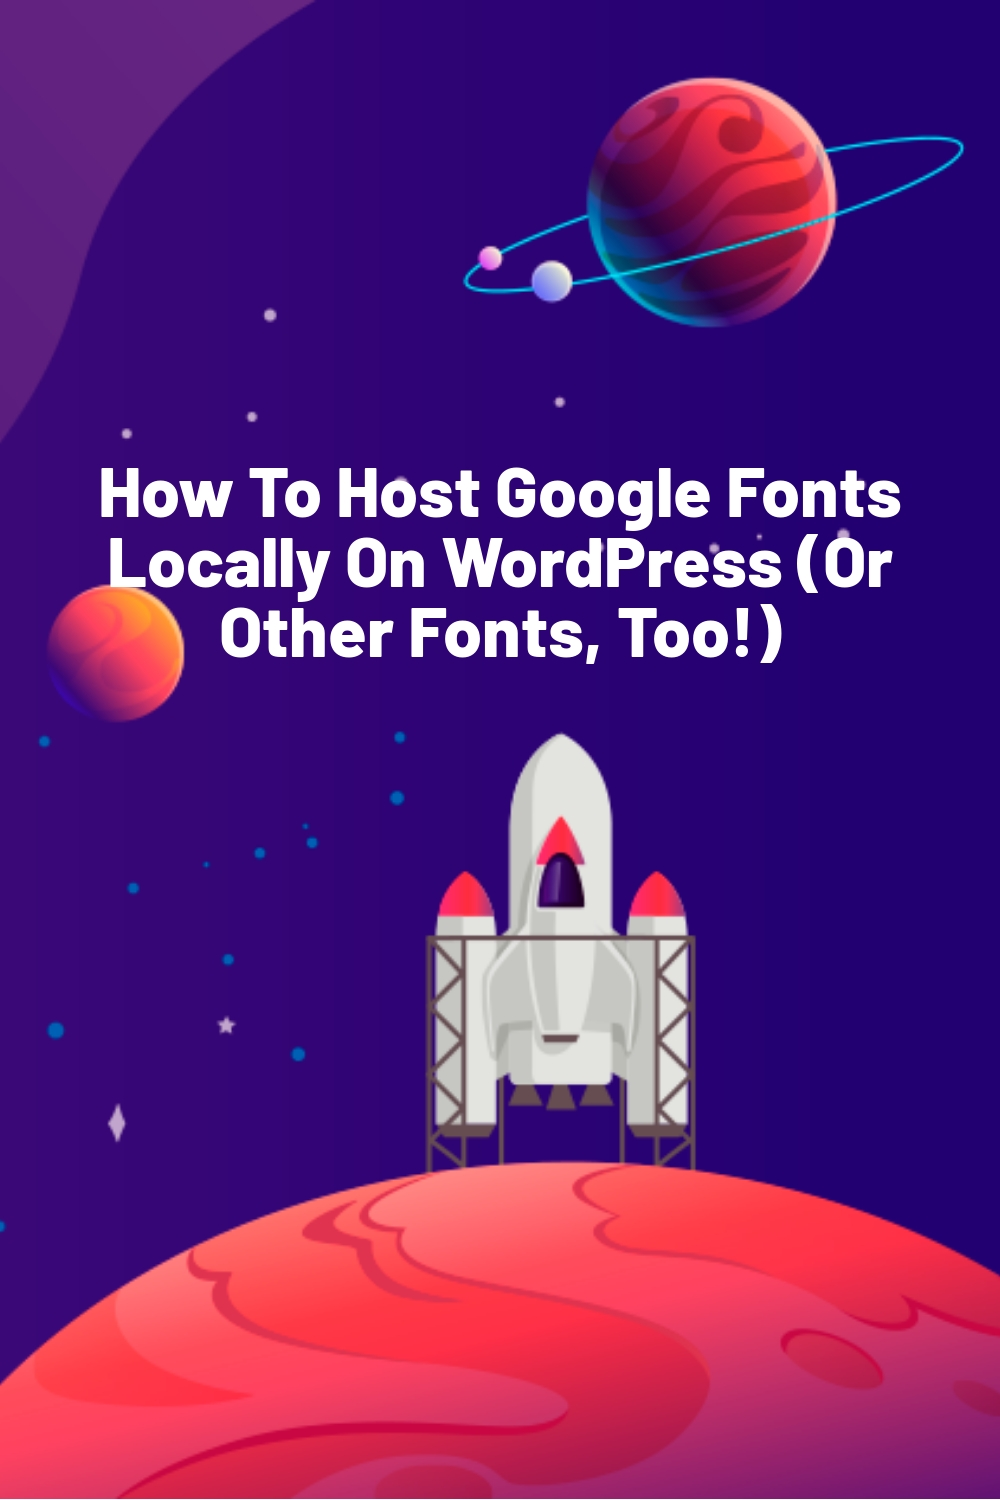 How To Host Google Fonts Locally On WordPress (Or Other Fonts, Too!)